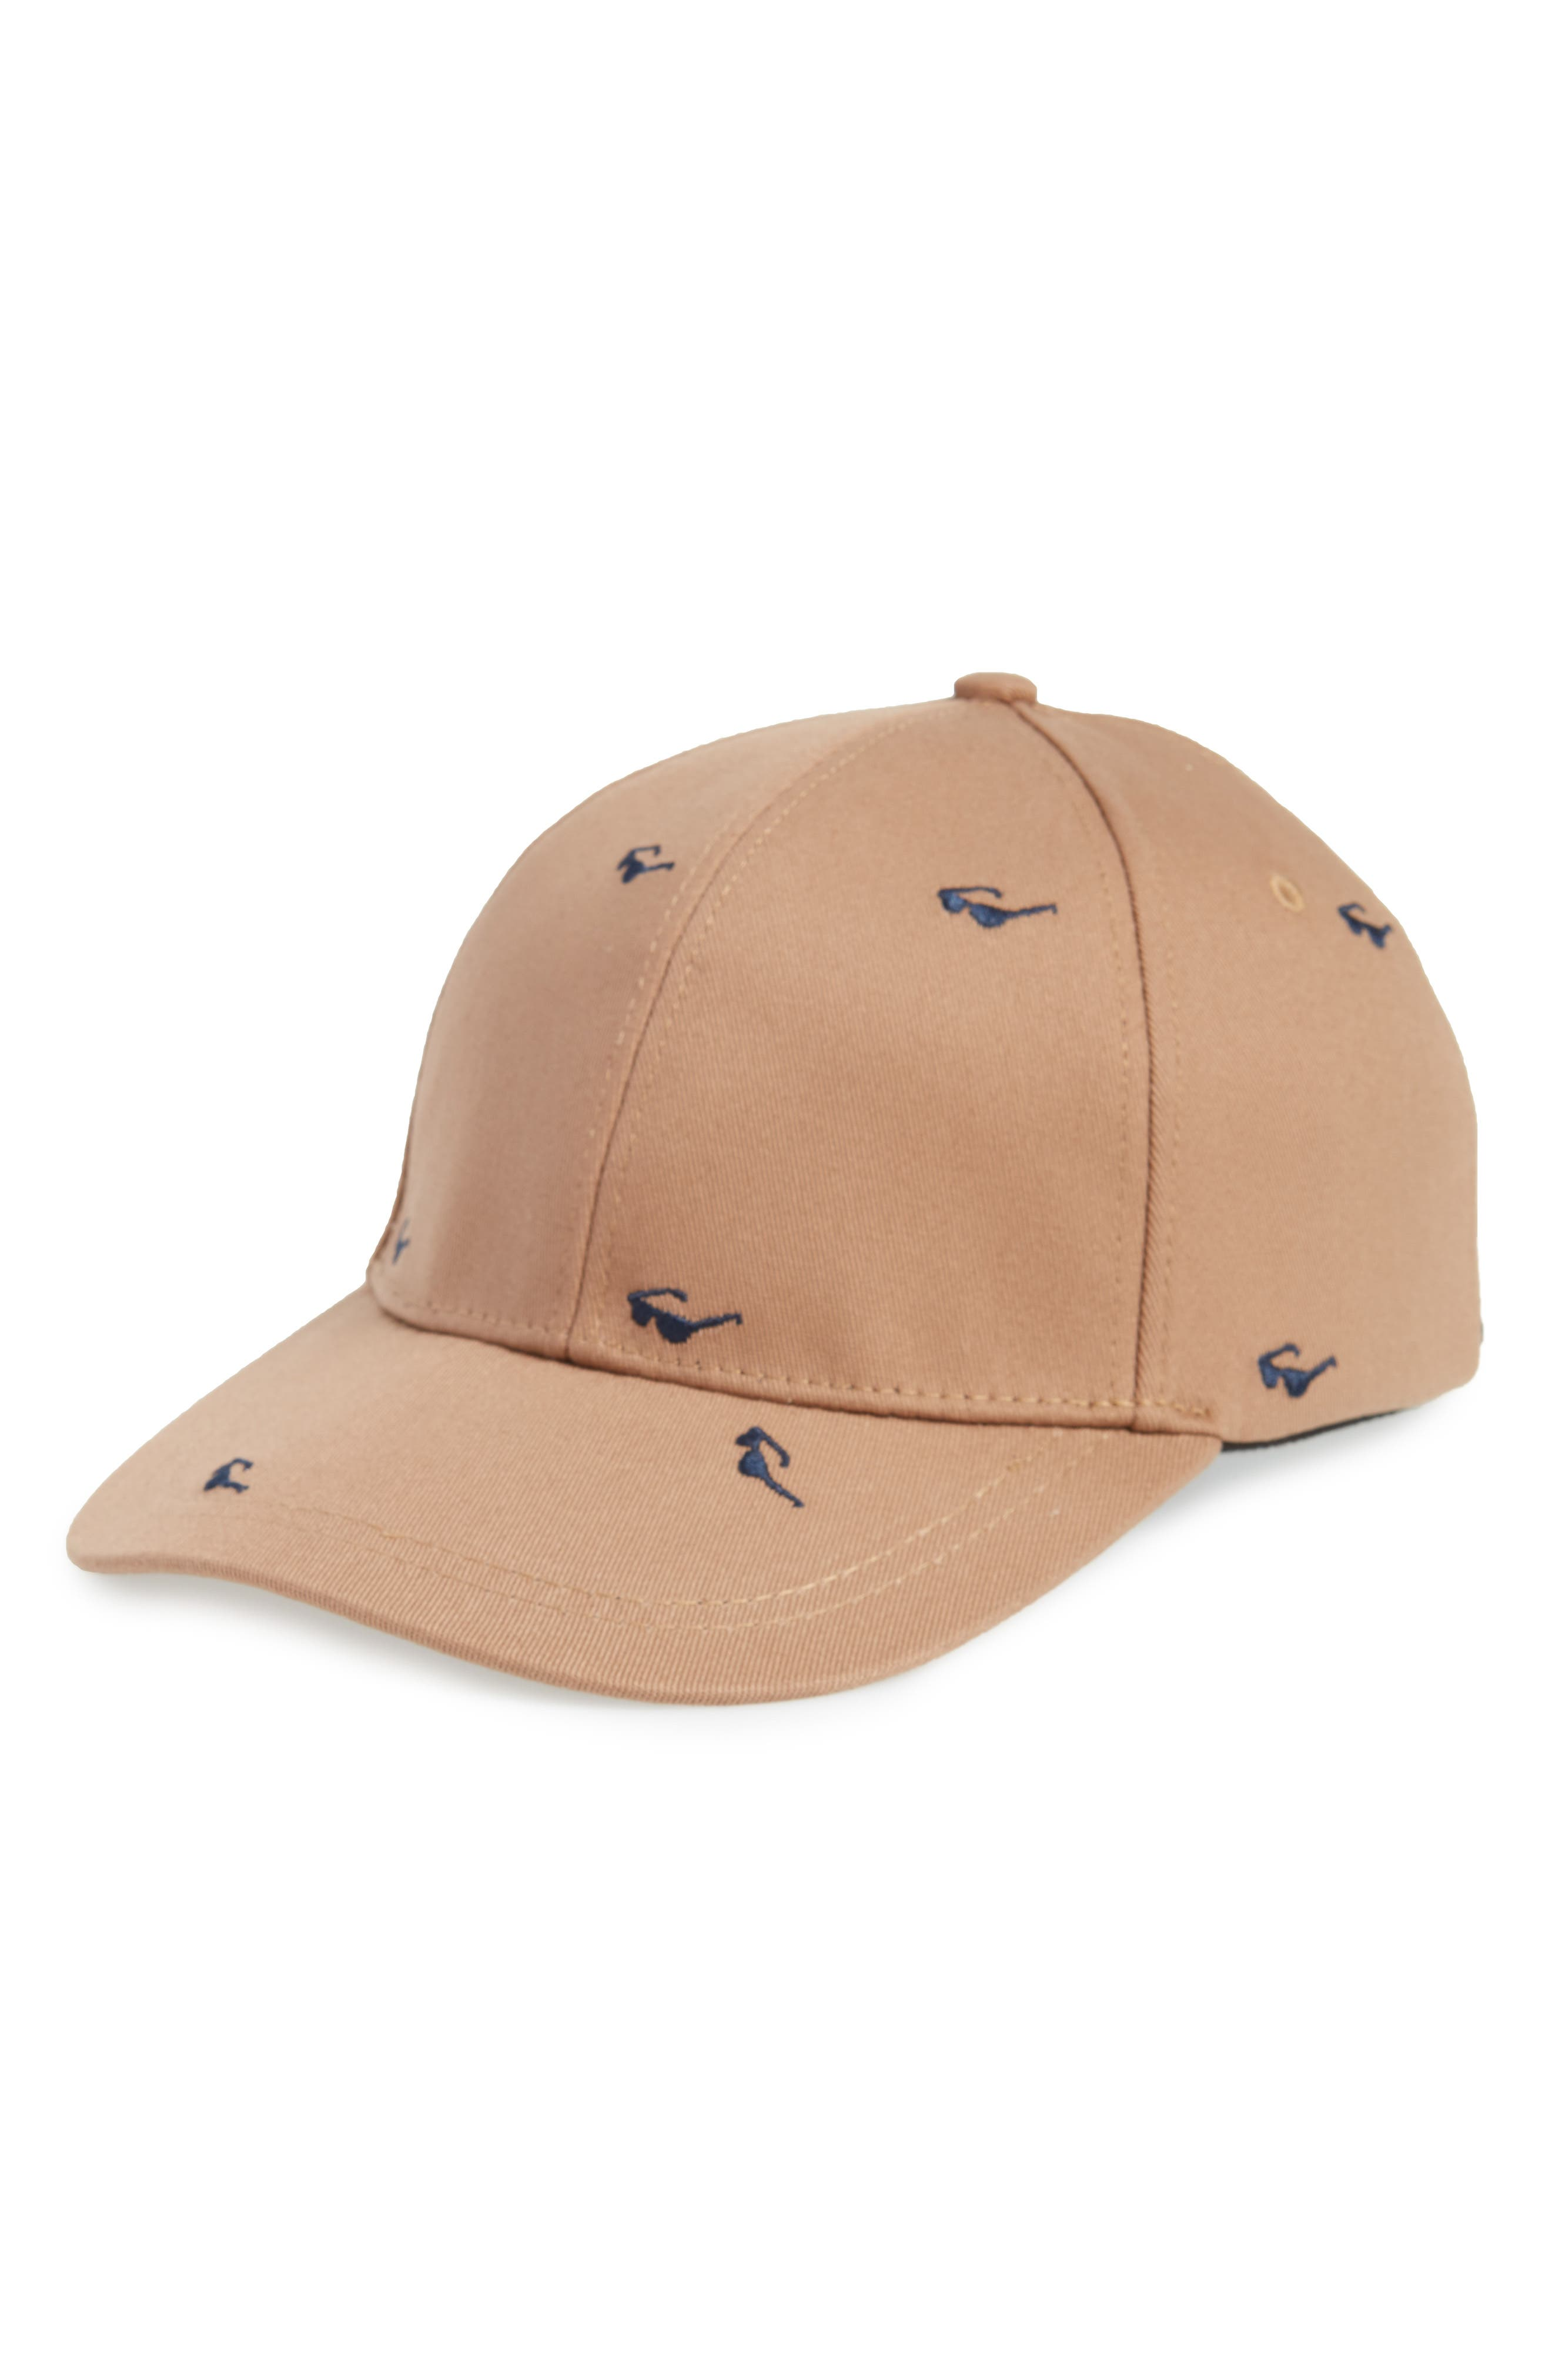 Embroidered Ball Cap,                         Main,                         color, Khaki